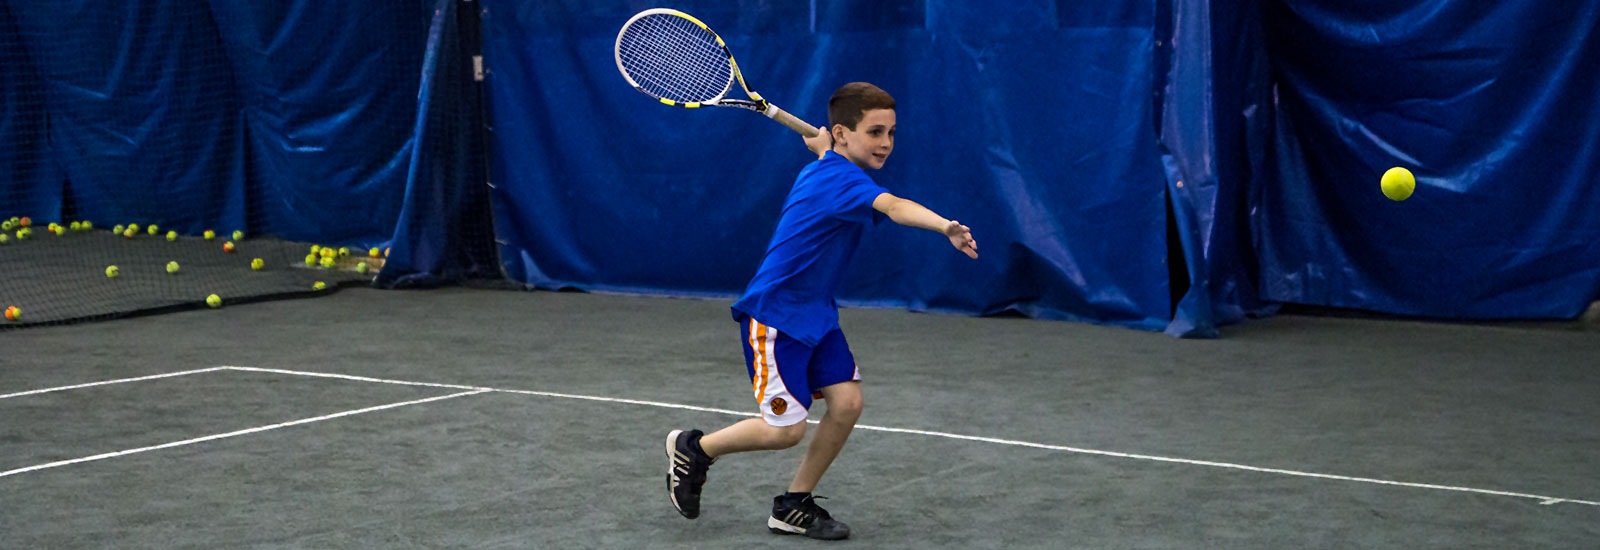 No matter what you are looking for you'll find NYC tennis the way you love it at Advantage Tennis Clubs. We serve up programming for athletes of all ages, plus camps, competitive play and tournaments for kids. Call us to arrange your next match.